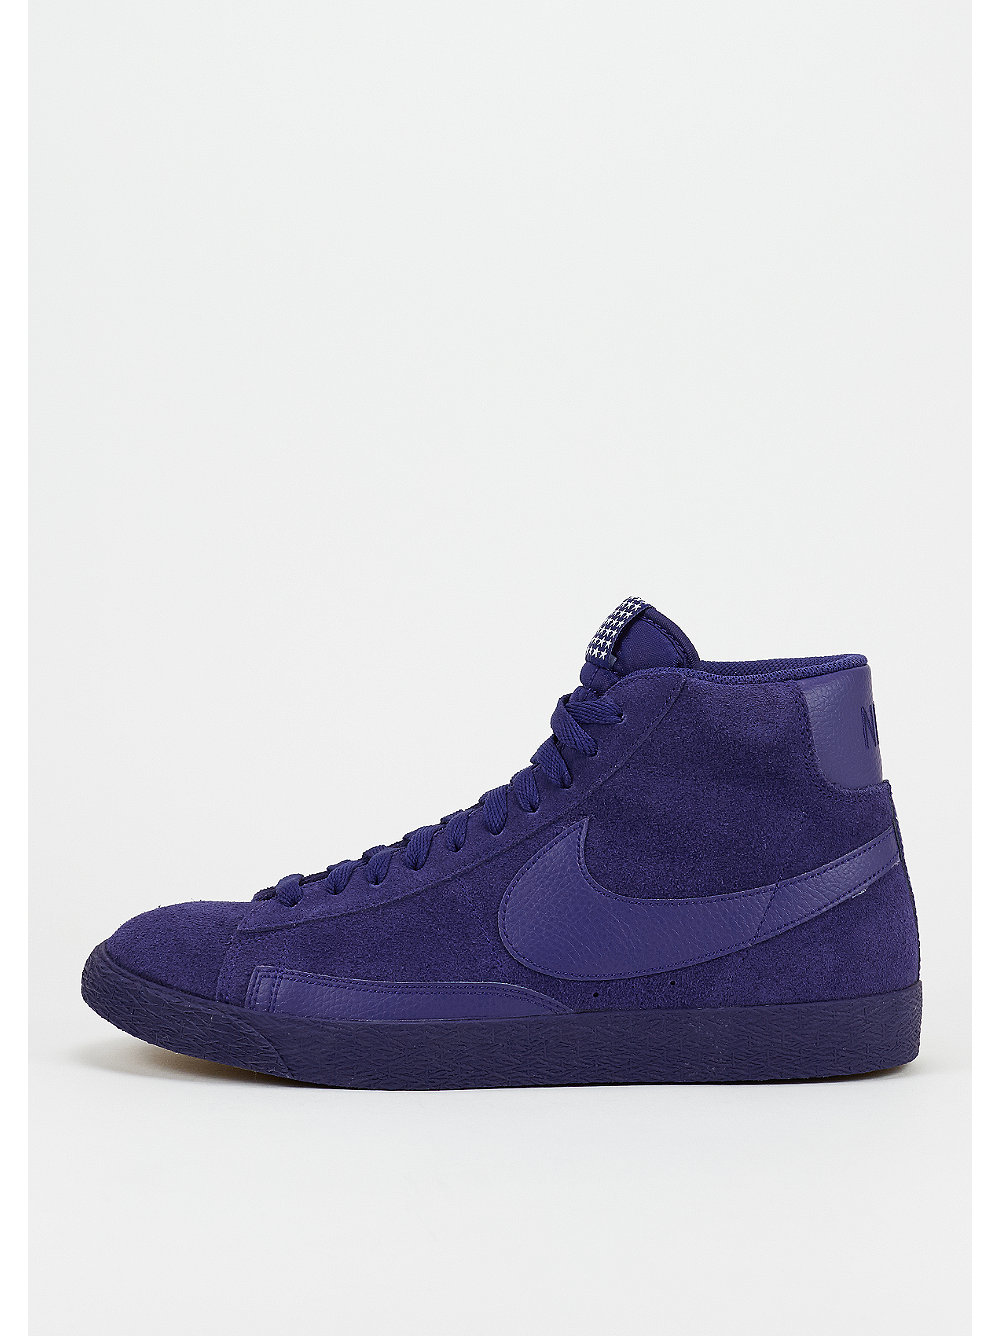 Nike Blazer Royal Blue